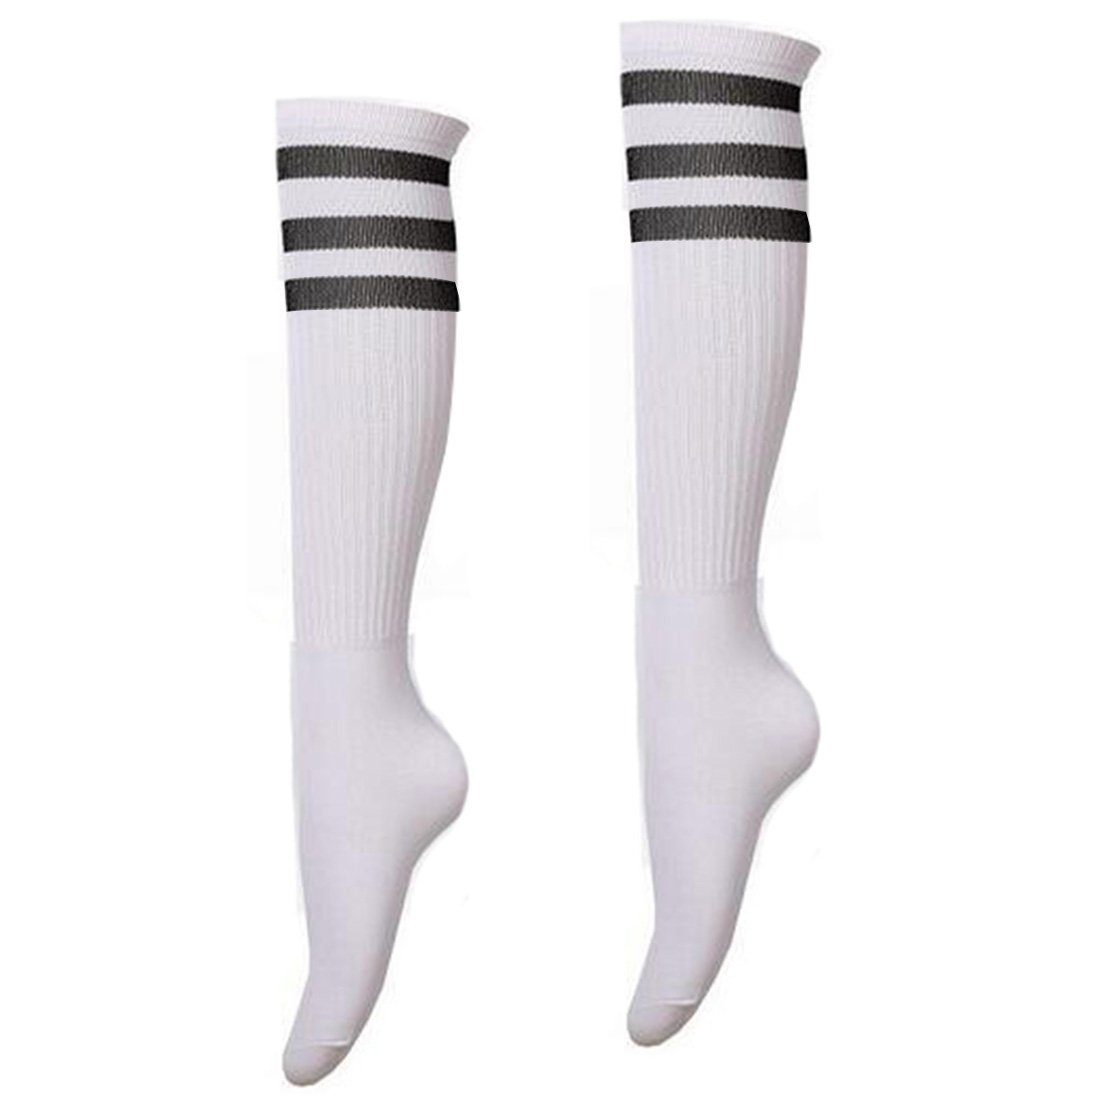 Children Sport Football Soccer Long Socks Over Knee High Sock For Boys And Girls Baseball Hockey striped Socks Kids Socks